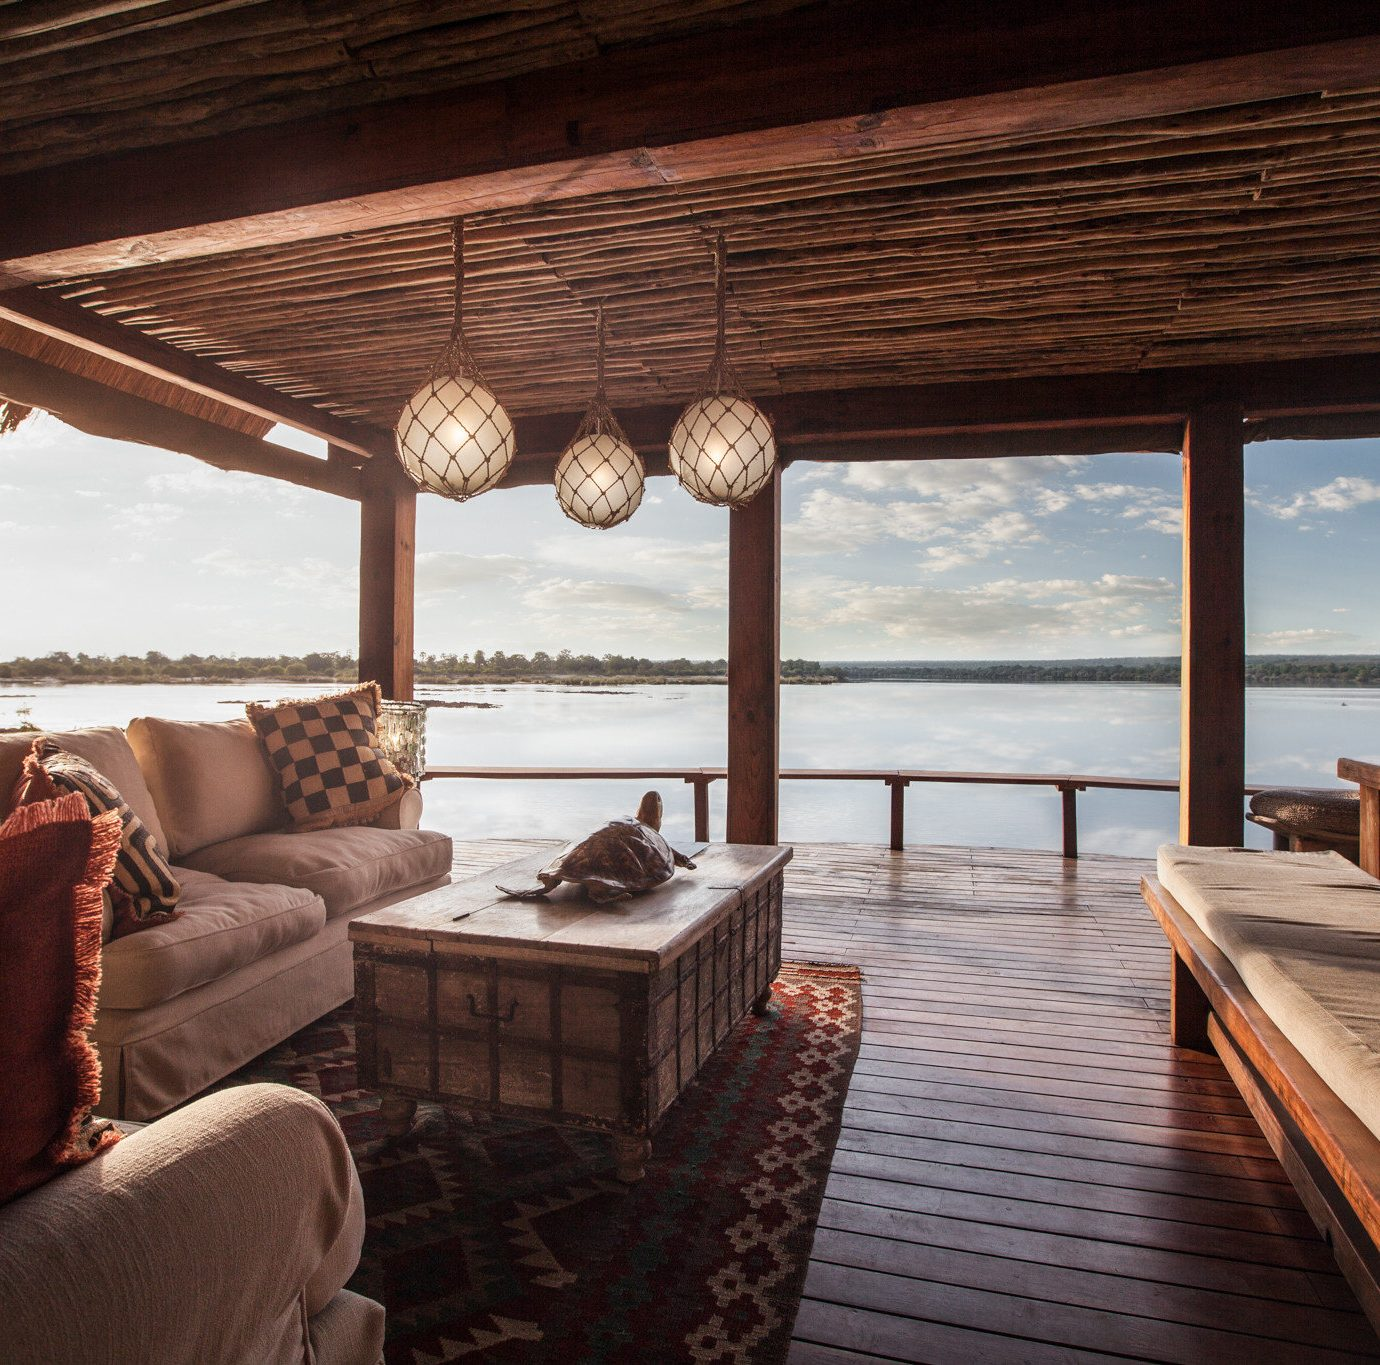 Hotels Safaris property home porch Resort outdoor structure house living room cottage Patio Deck